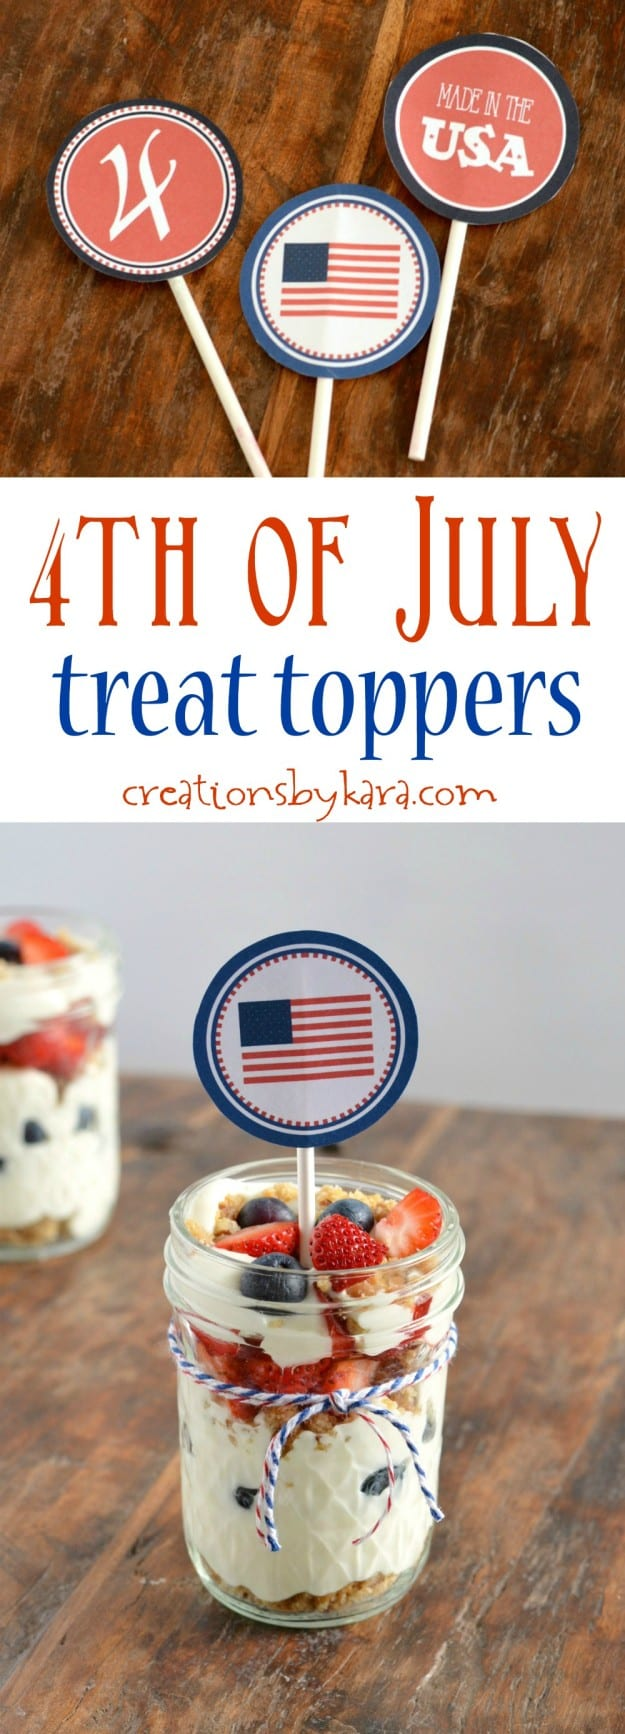 fourth of july treat toppers collage